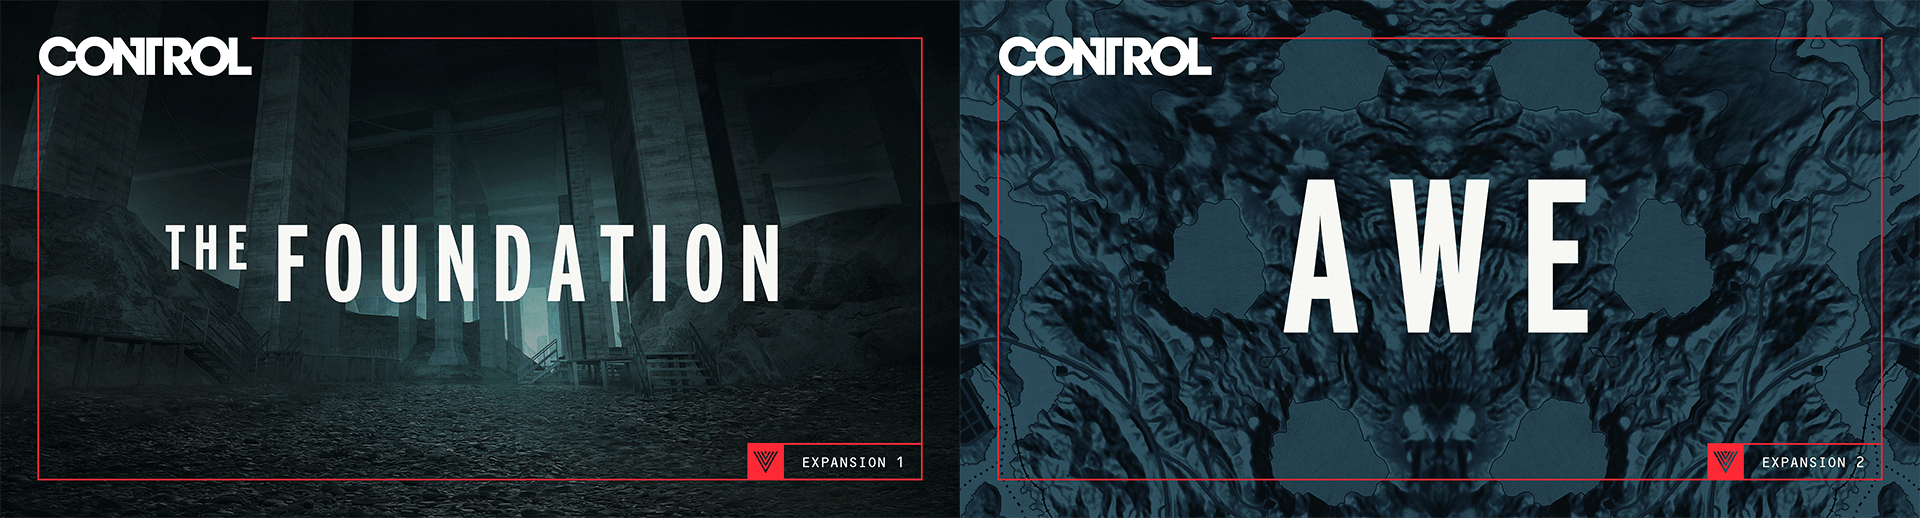 Control - Foundation & Expansion